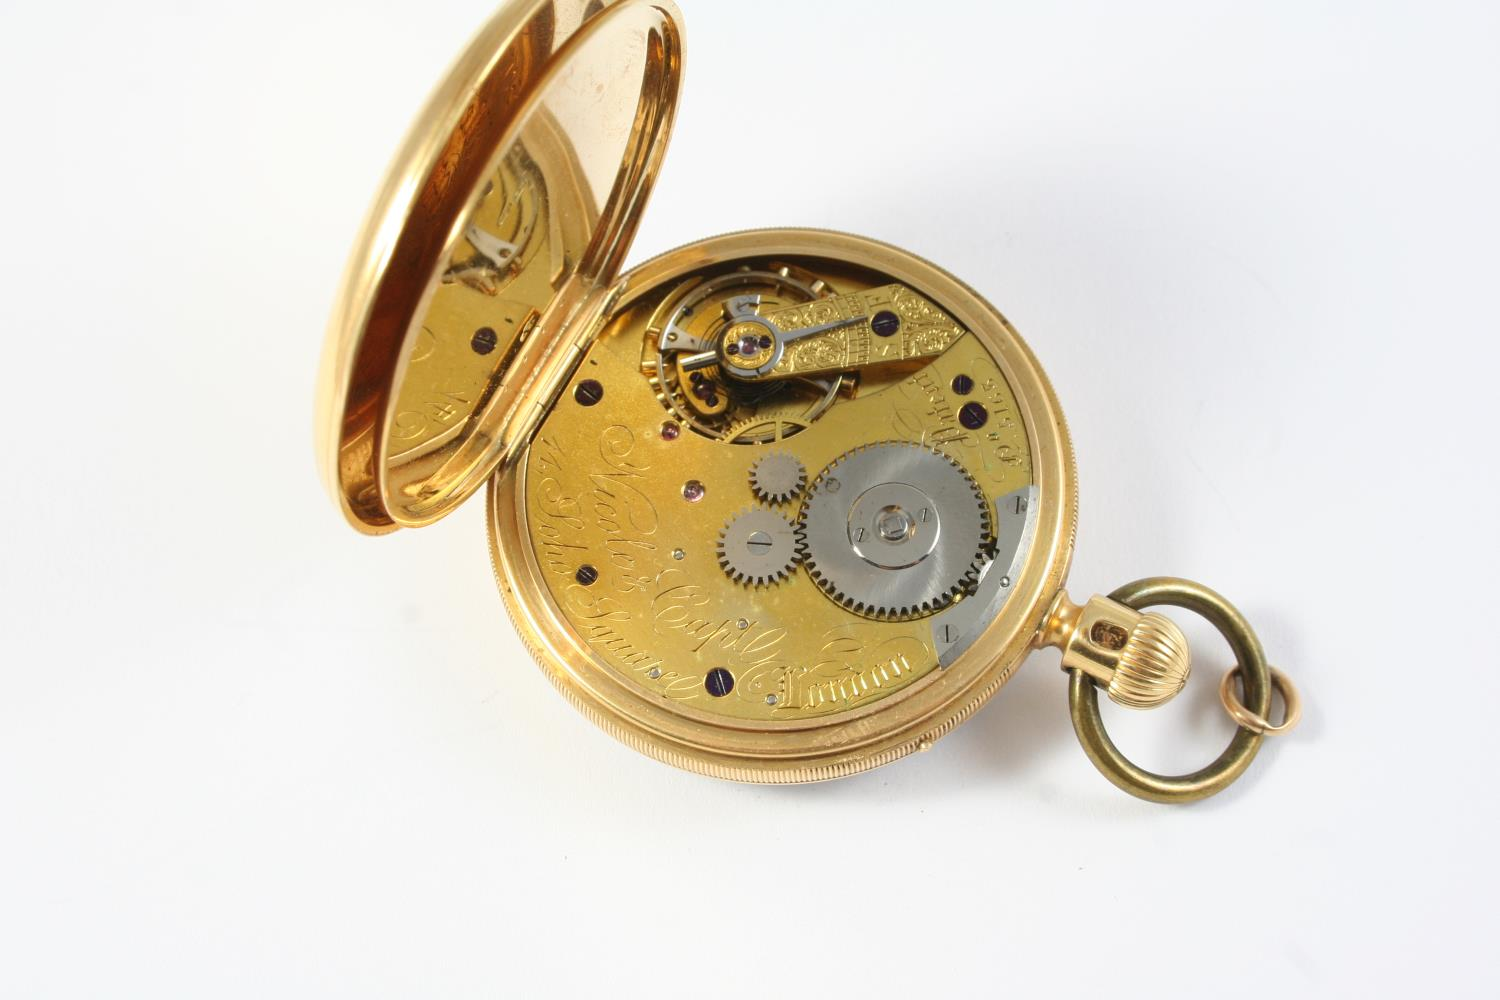 AN EARLY KEYLESS 18CT GOLD OPEN FACED POCKET WATCH BY NICOLE & CAPT, 14 SOHO SQ., LONDON the - Image 2 of 6